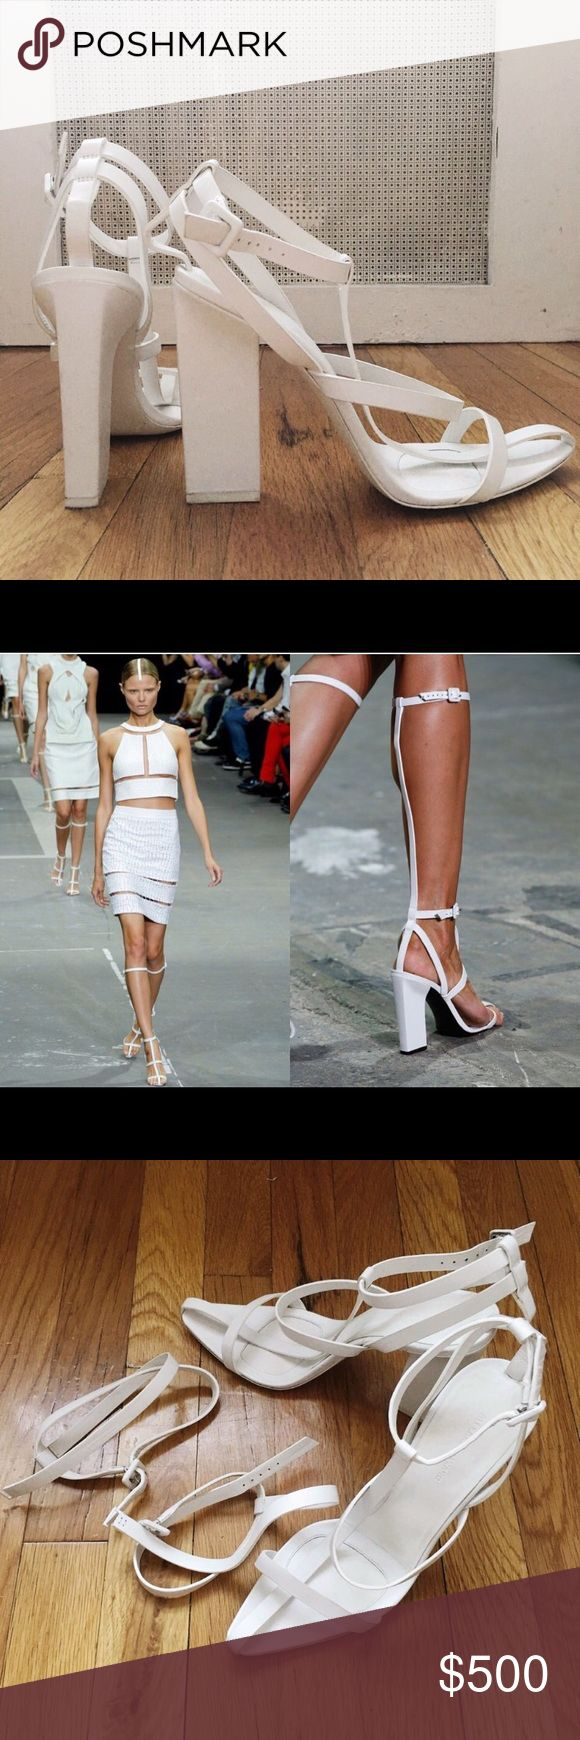 Alexander Wang white A-Line Gladiator Sandal Heels Alexander Wang Spring/Summer 2013 sold out everywhere.  Aline Gladiator High Leather Sandals 2.0 Size: 39 Heel height: 4.25 in / 110mm Buckles fasten at the ankle and top line.  Comes with removable knee high straps.  Originally bought for $695  Lightly worn once only - practically new.   #alexanderwang #heels #sandals #spring #summer #white #gladiator #rare Alexander Wang Shoes Heels